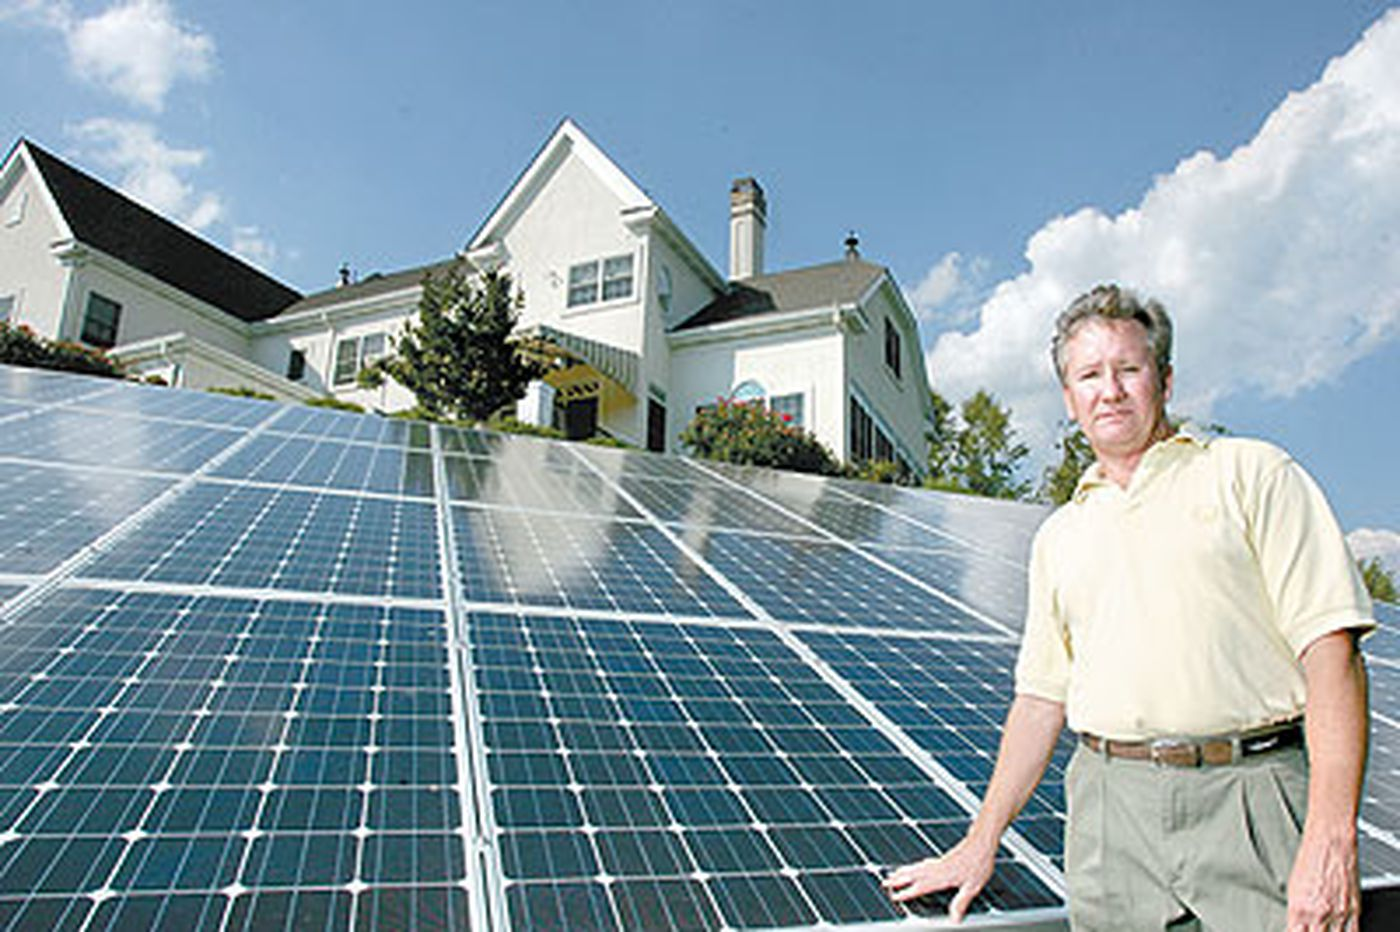 Pa. quietly pulls back solar tax credit